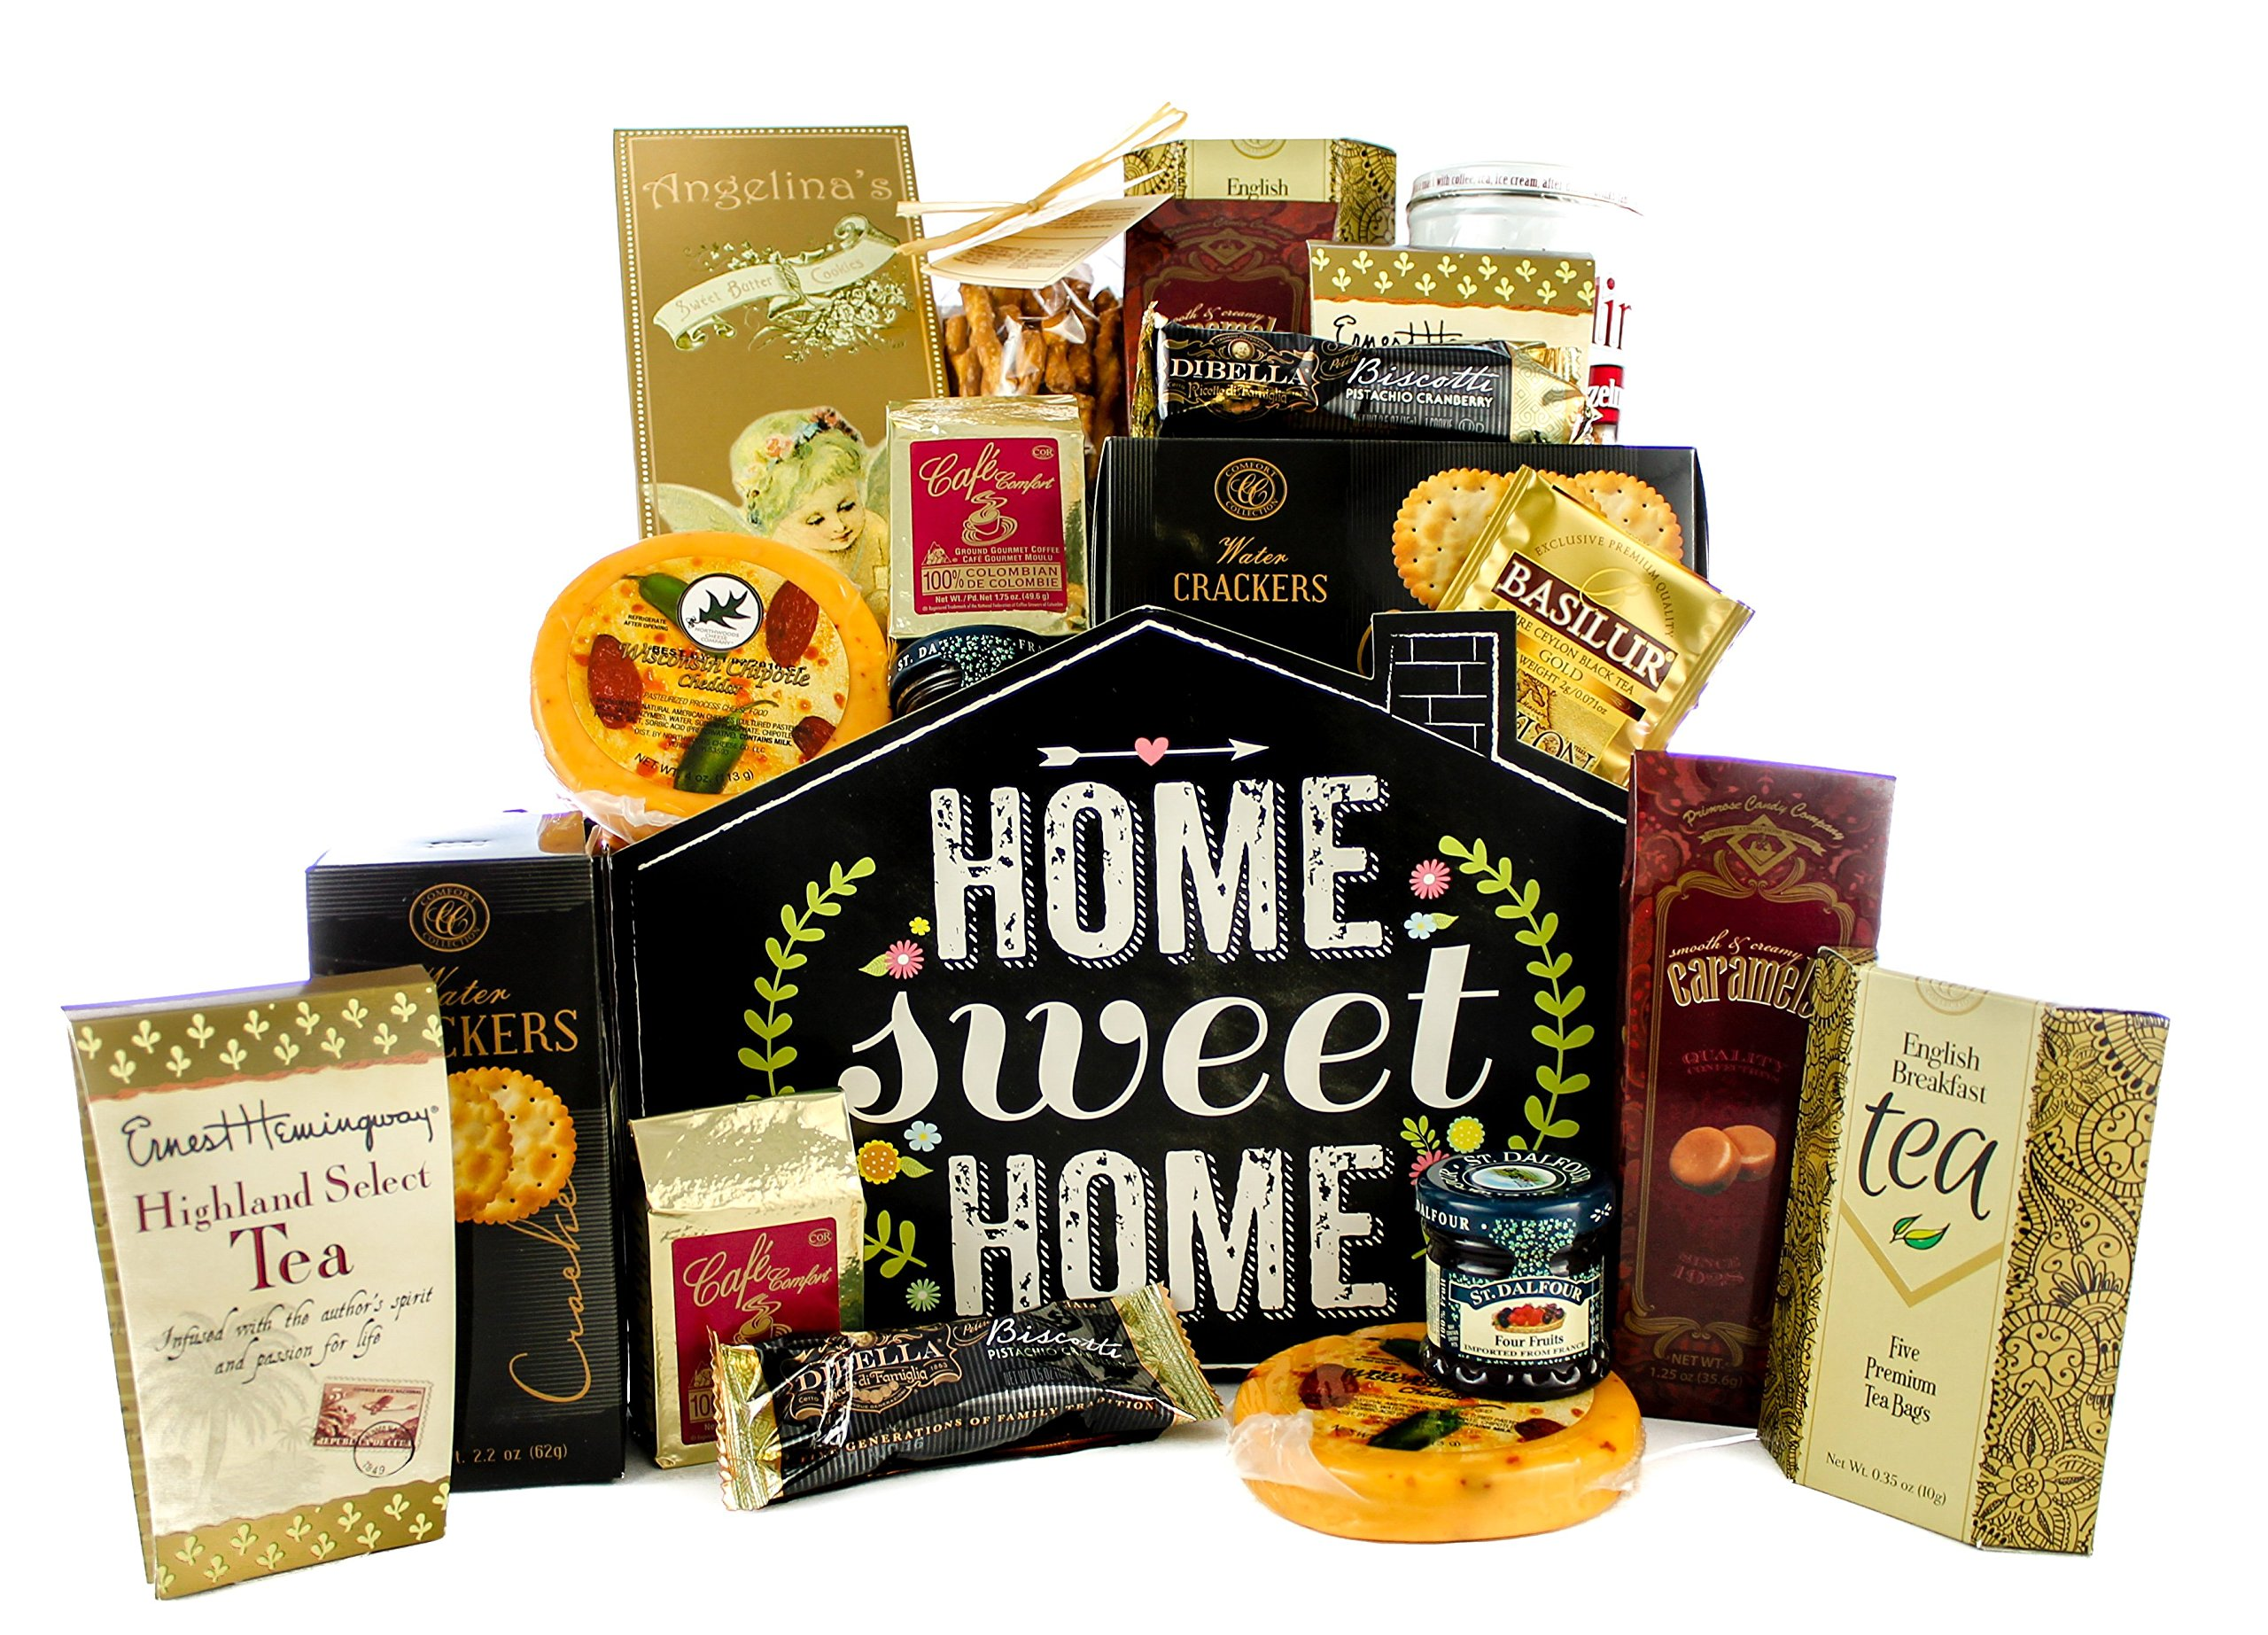 Gifts Unlimted New Home Housewarming Gift Basket, Home Sweet Home, Great Realtor Gift by Gifts Unlimited (Image #1)